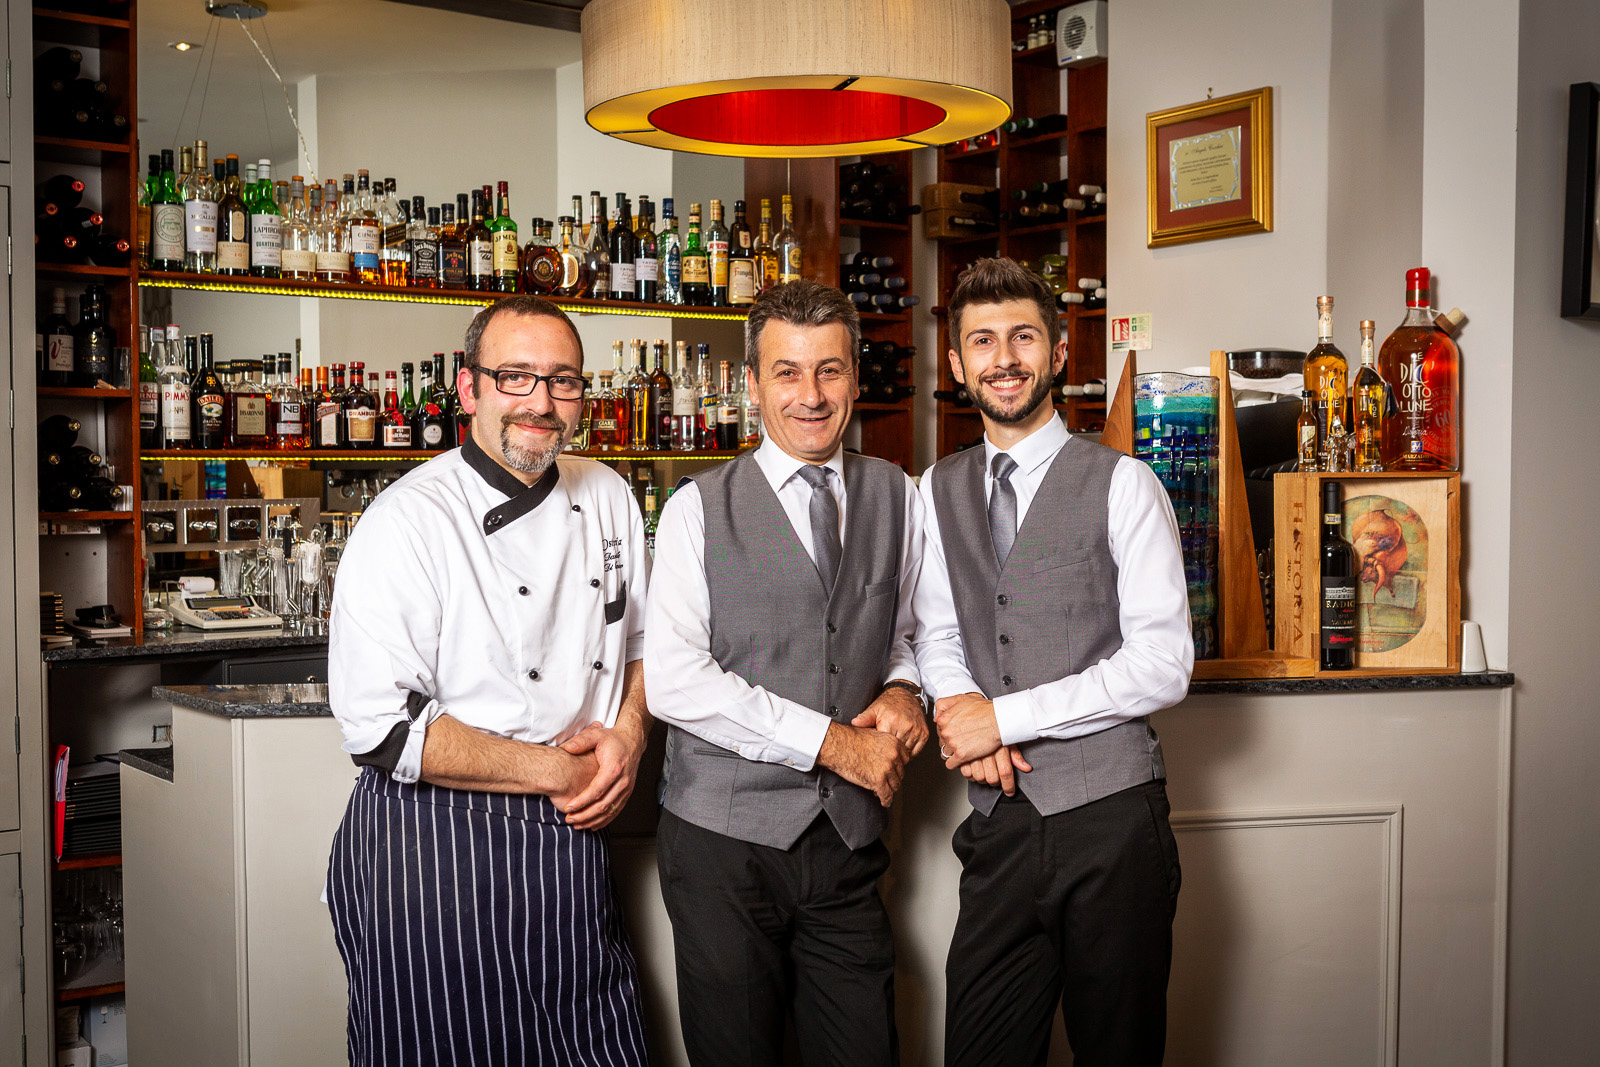 Osteria_Portrait_Photography (3 of 3)